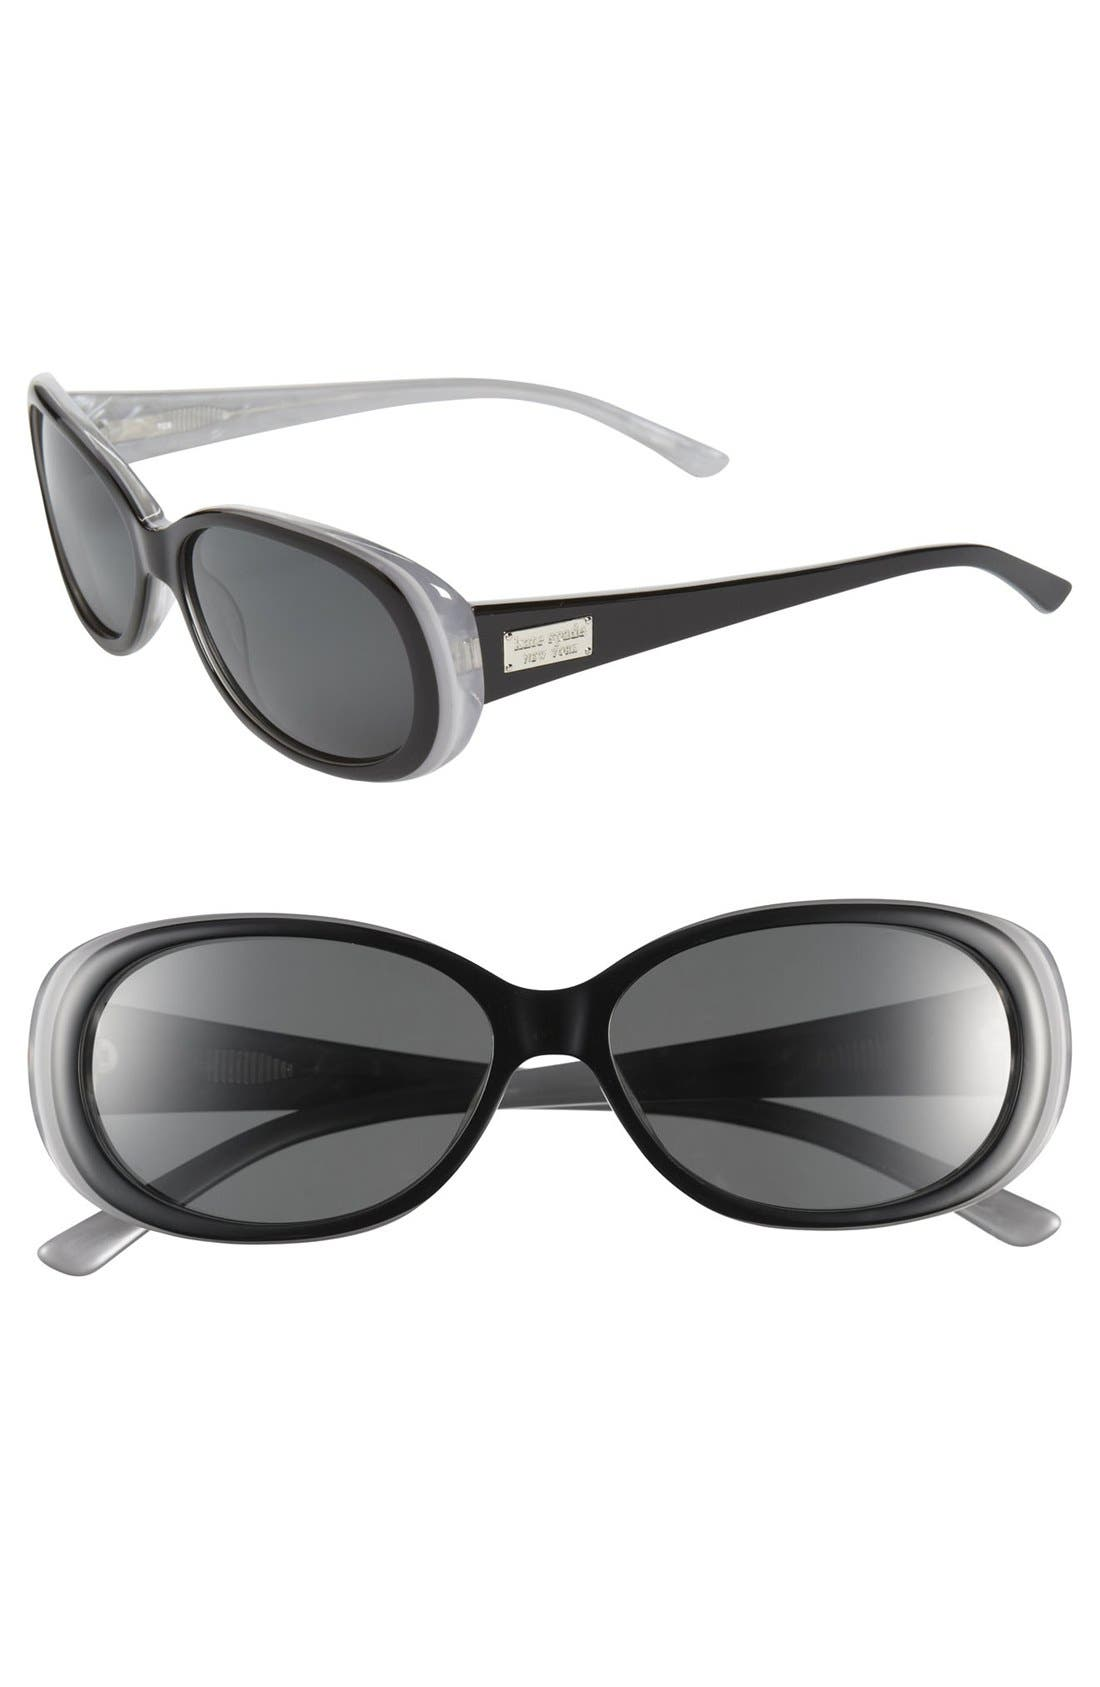 Alternate Image 1 Selected - kate spade new york 'sinclair' 55mm polarized sunglasses